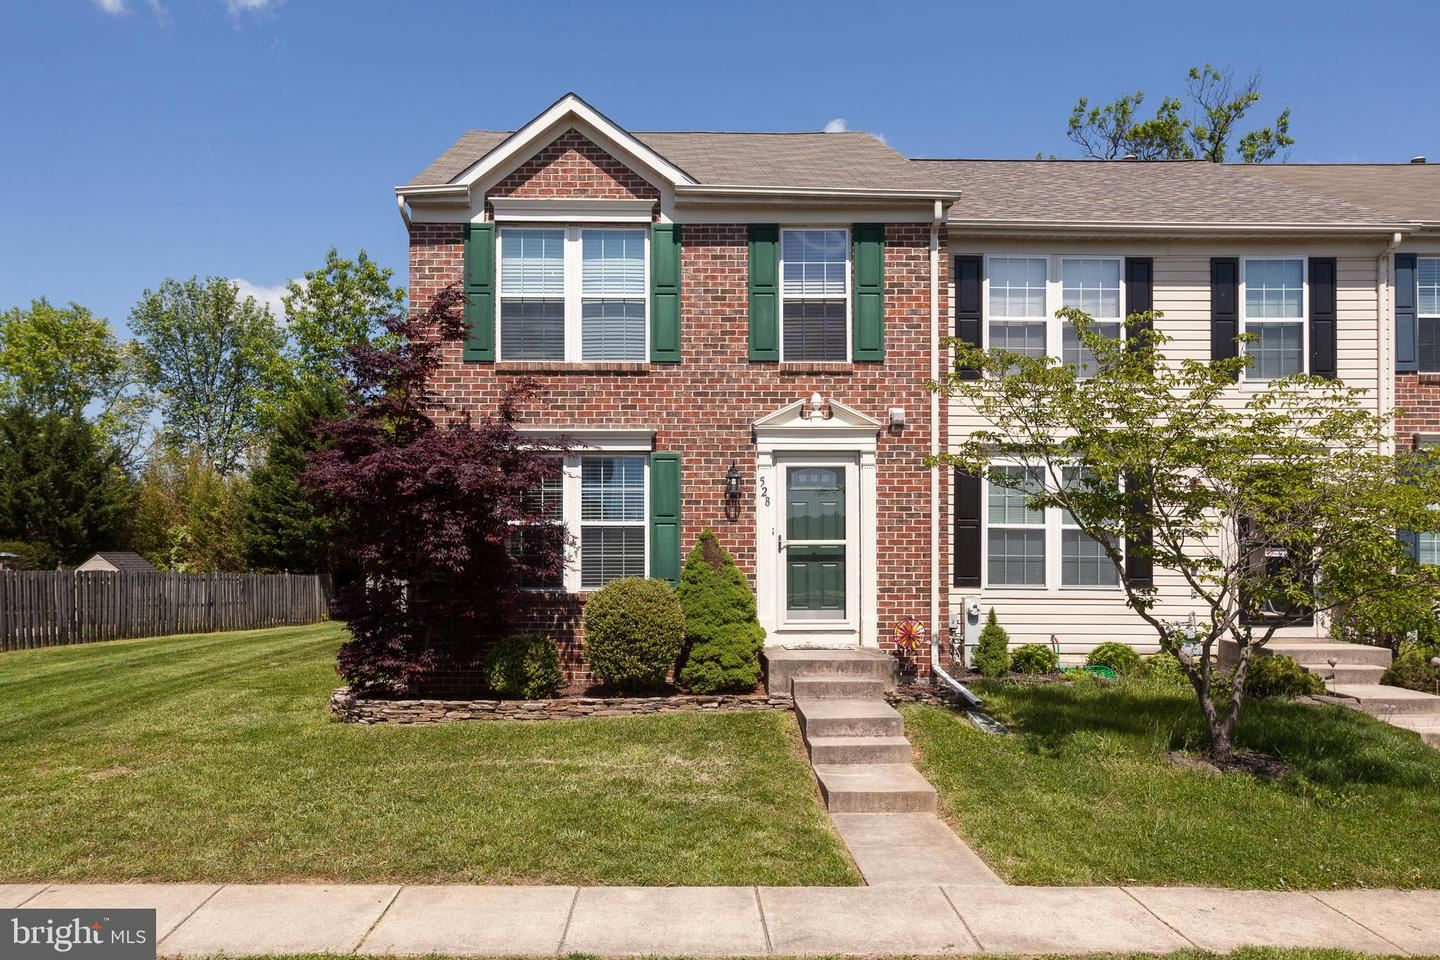 528 MACINTOSH CIR, Joppa, MD 21085 - MLS#: MDHR259988